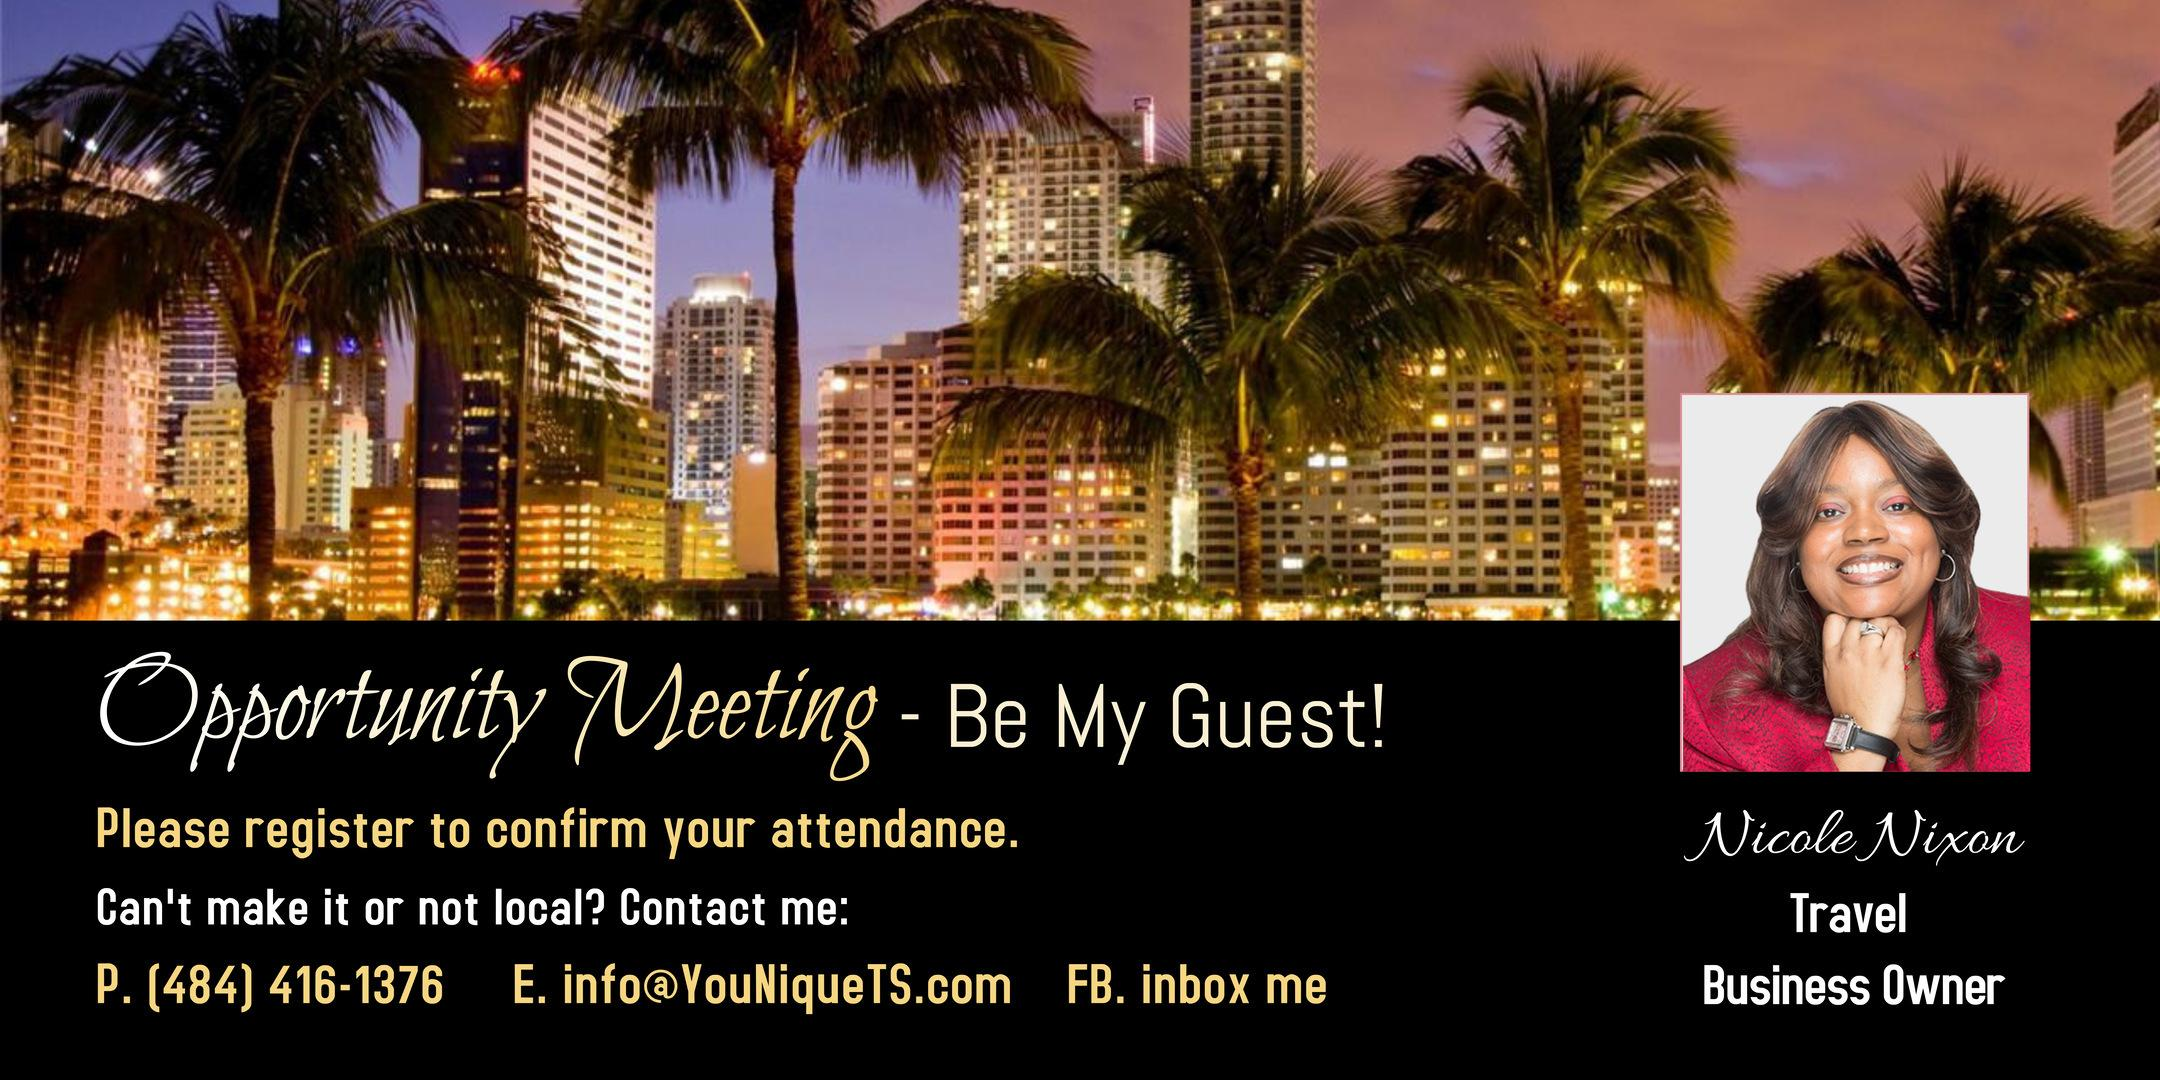 Travel Business Ownership Opportunity Meeting